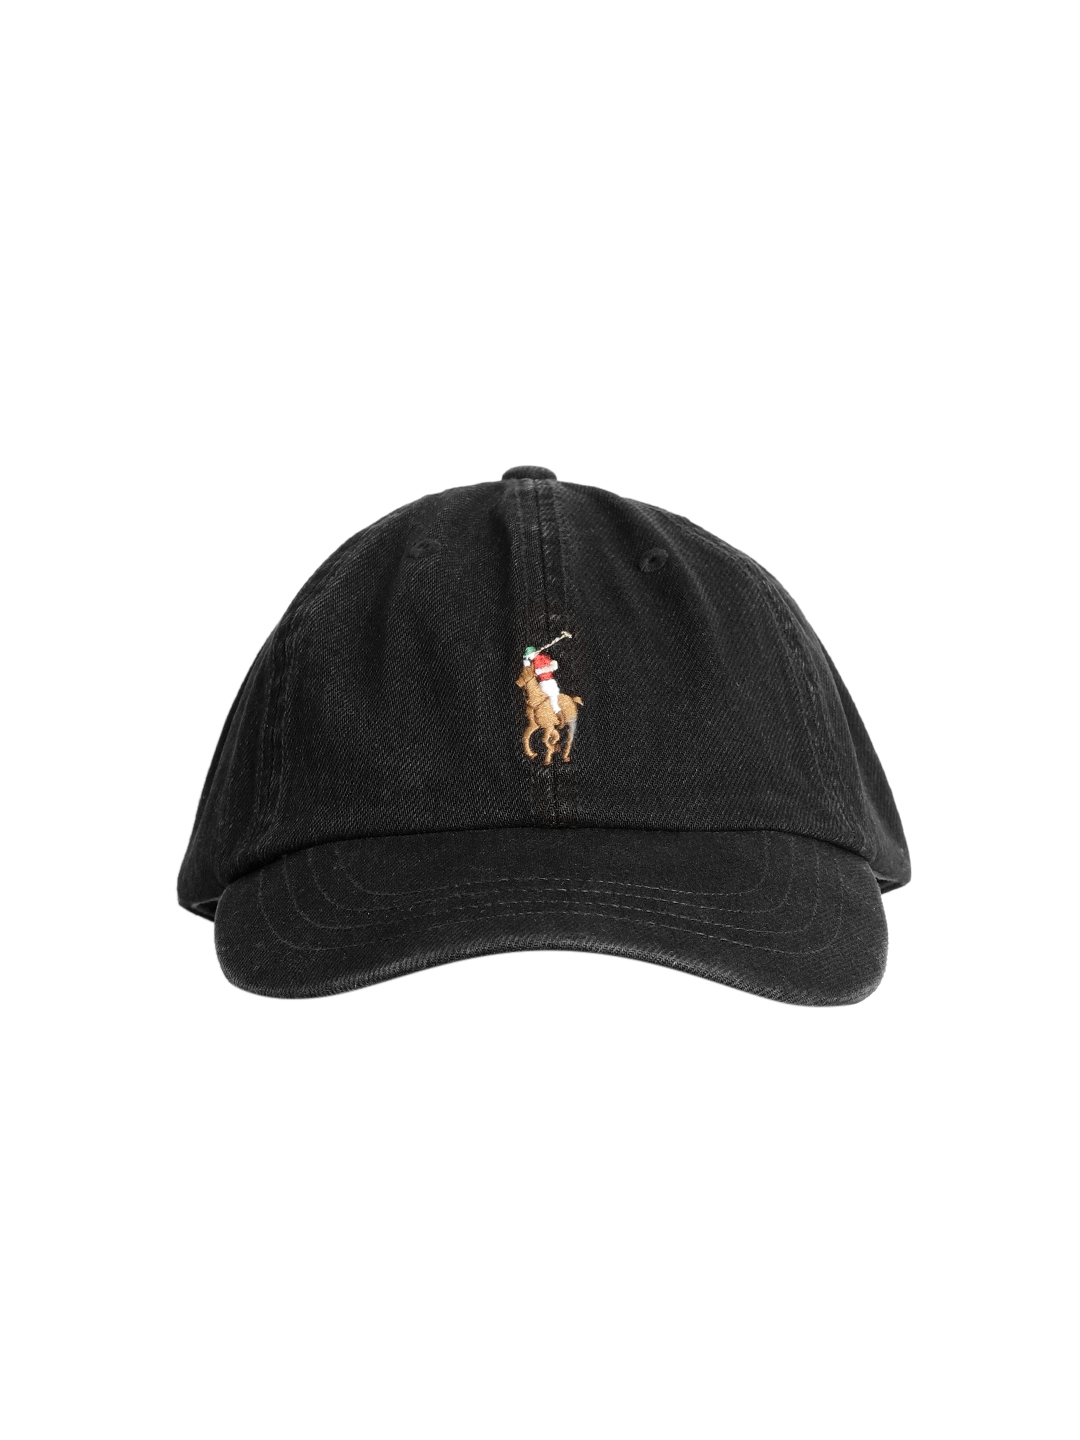 77ce655cc7c39 Buy Polo Ralph Lauren Men Black Solid Cap With Embroidered Logo ...